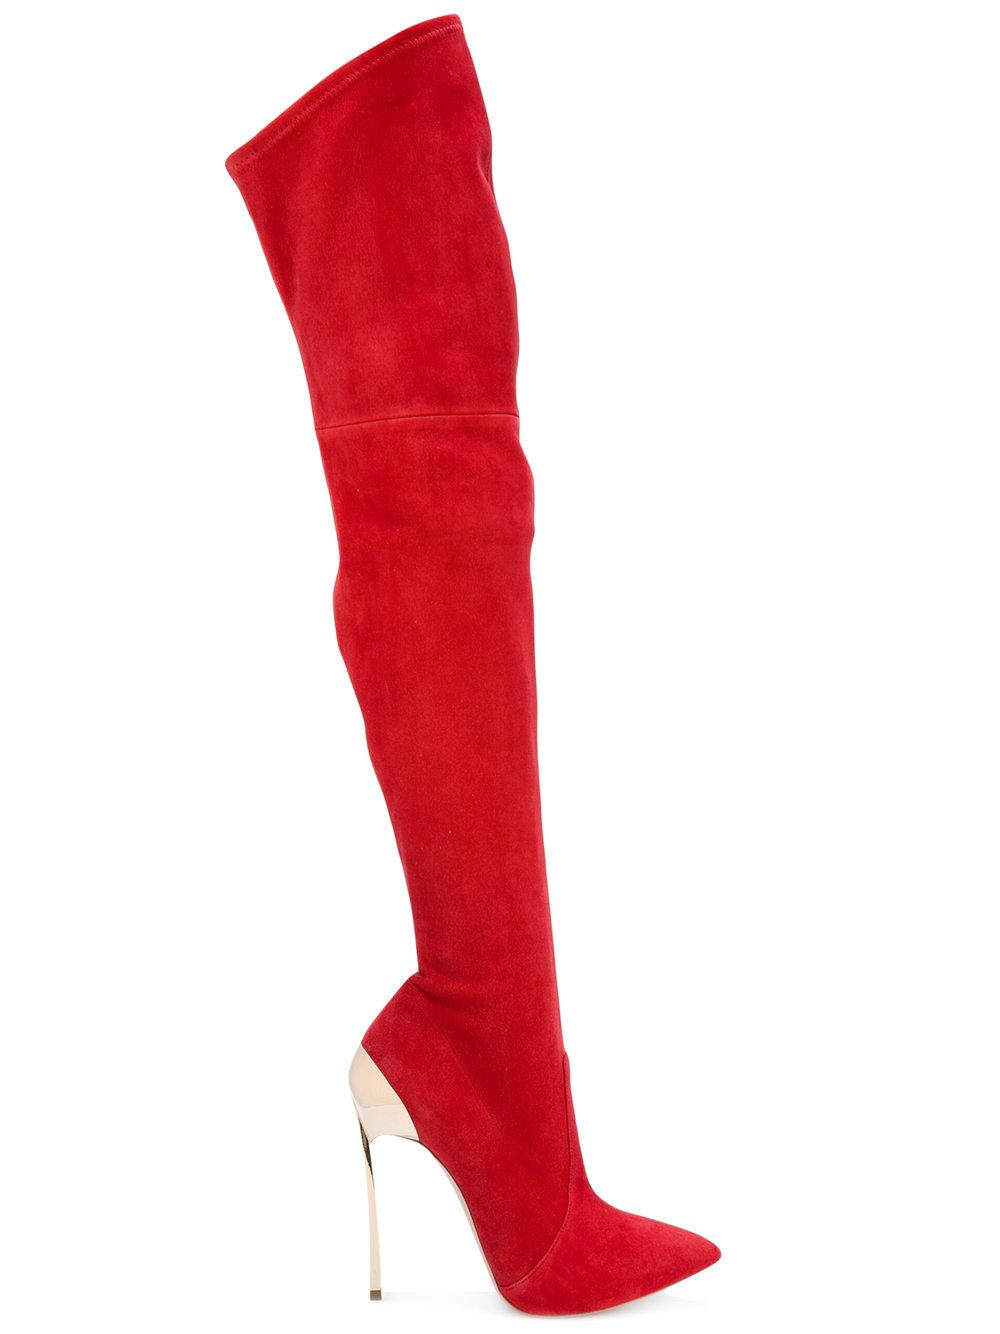 Casadei Suede Over-the-knee Boots in Red